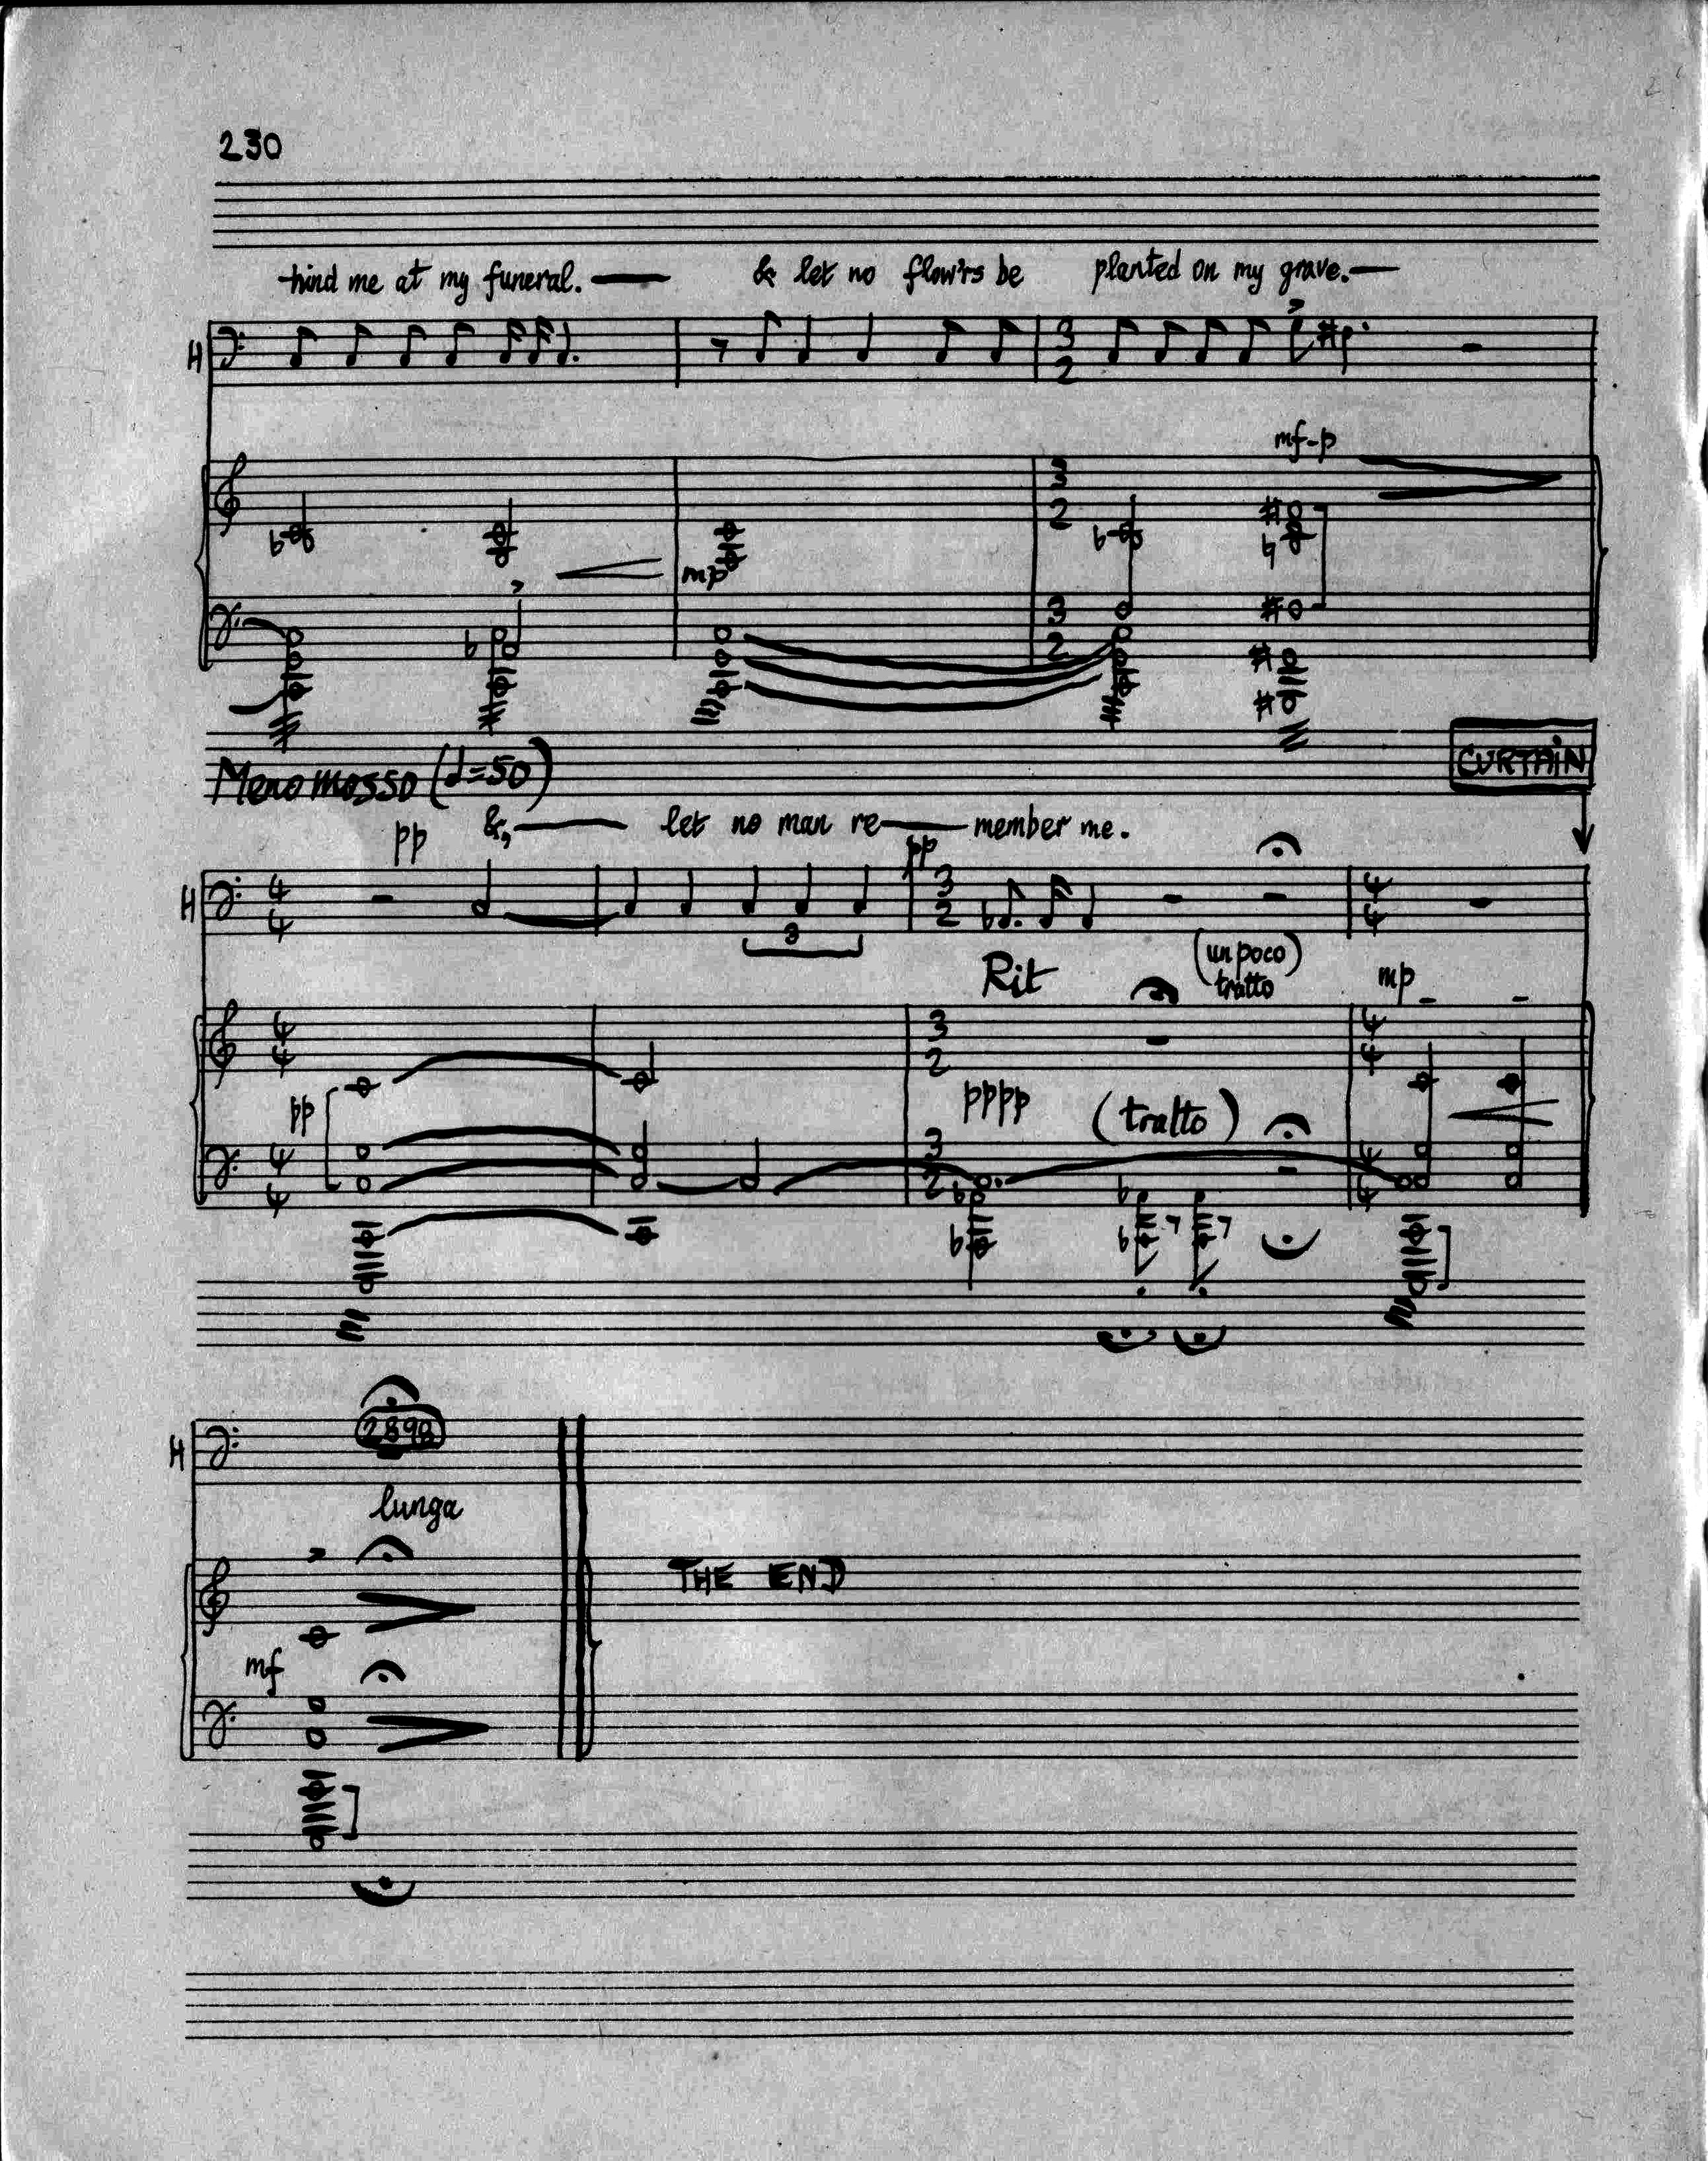 The final bars of the vocal score of The Mayor of Casterbridge, original edition, 1951